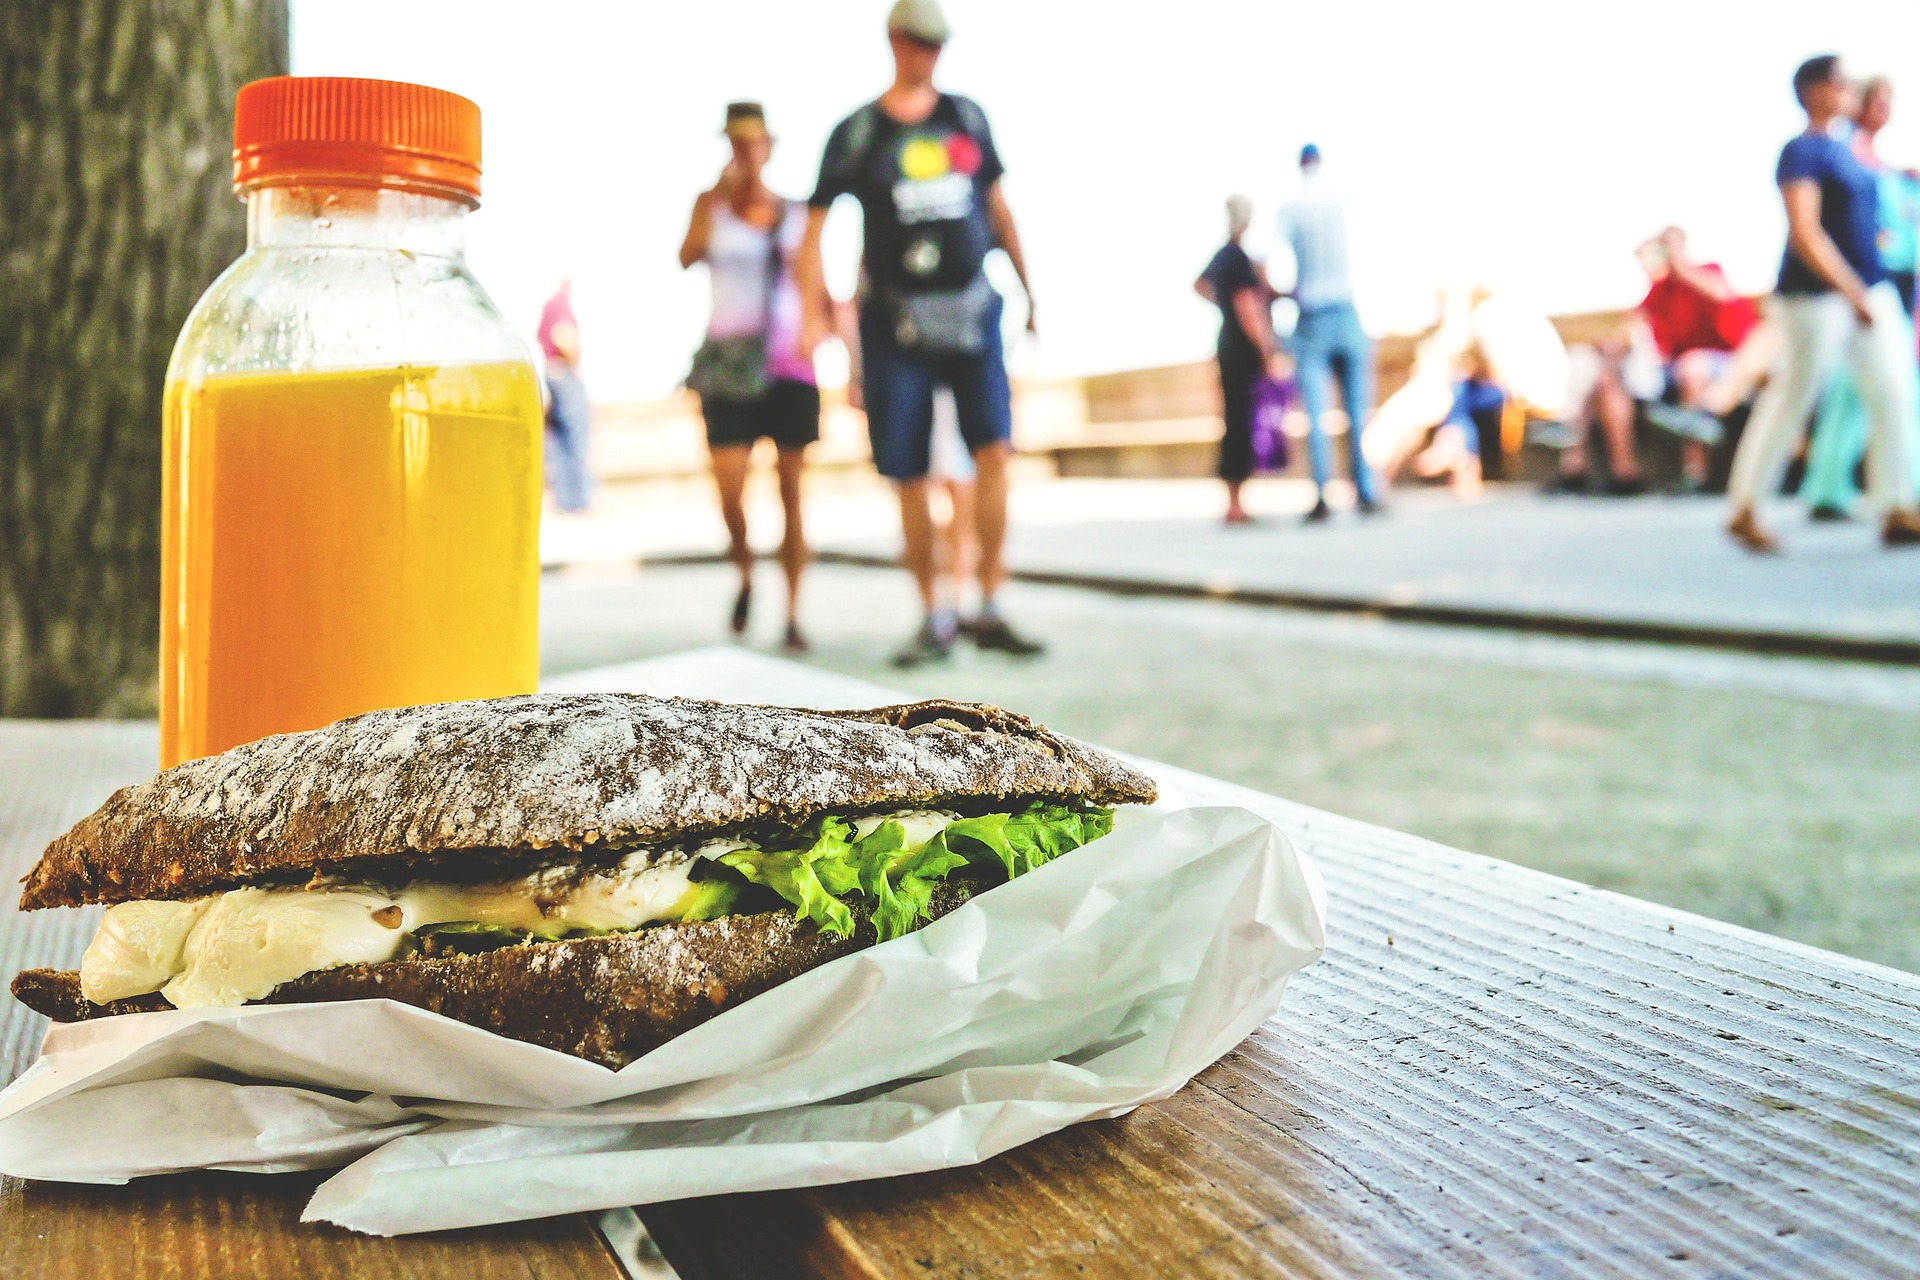 Foodie Friday: The 4th Annual FloMo Food Truck Fest